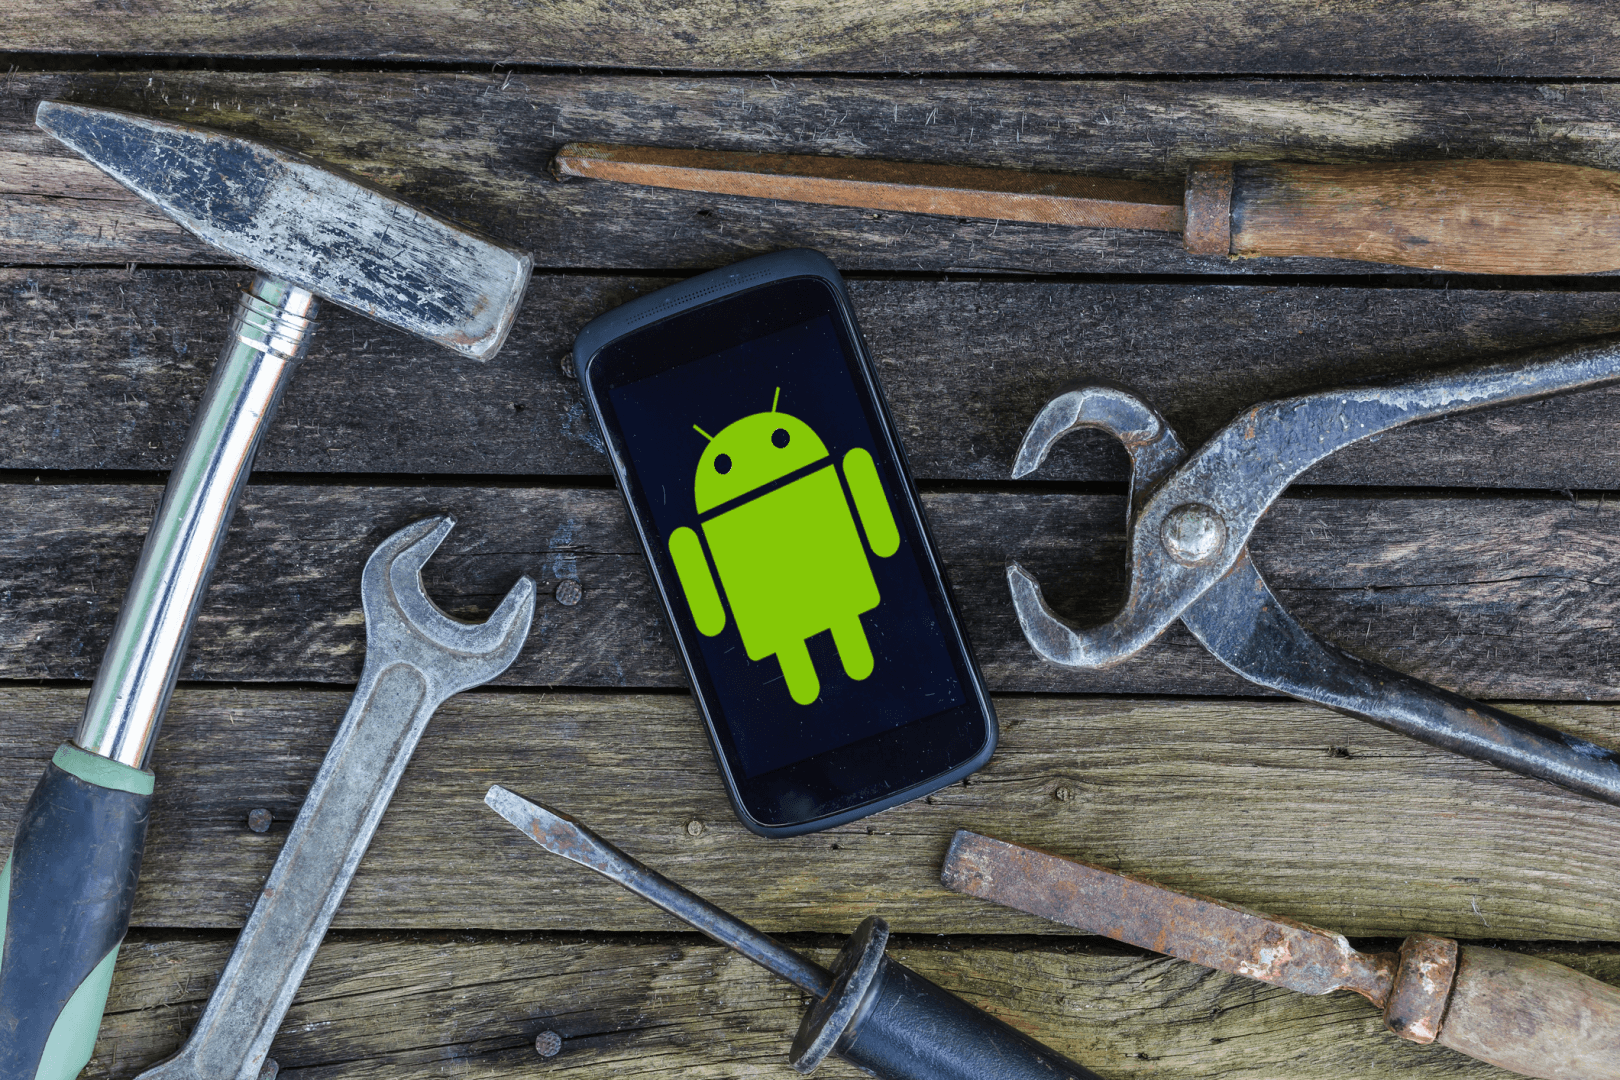 An android smartphone and hand tools